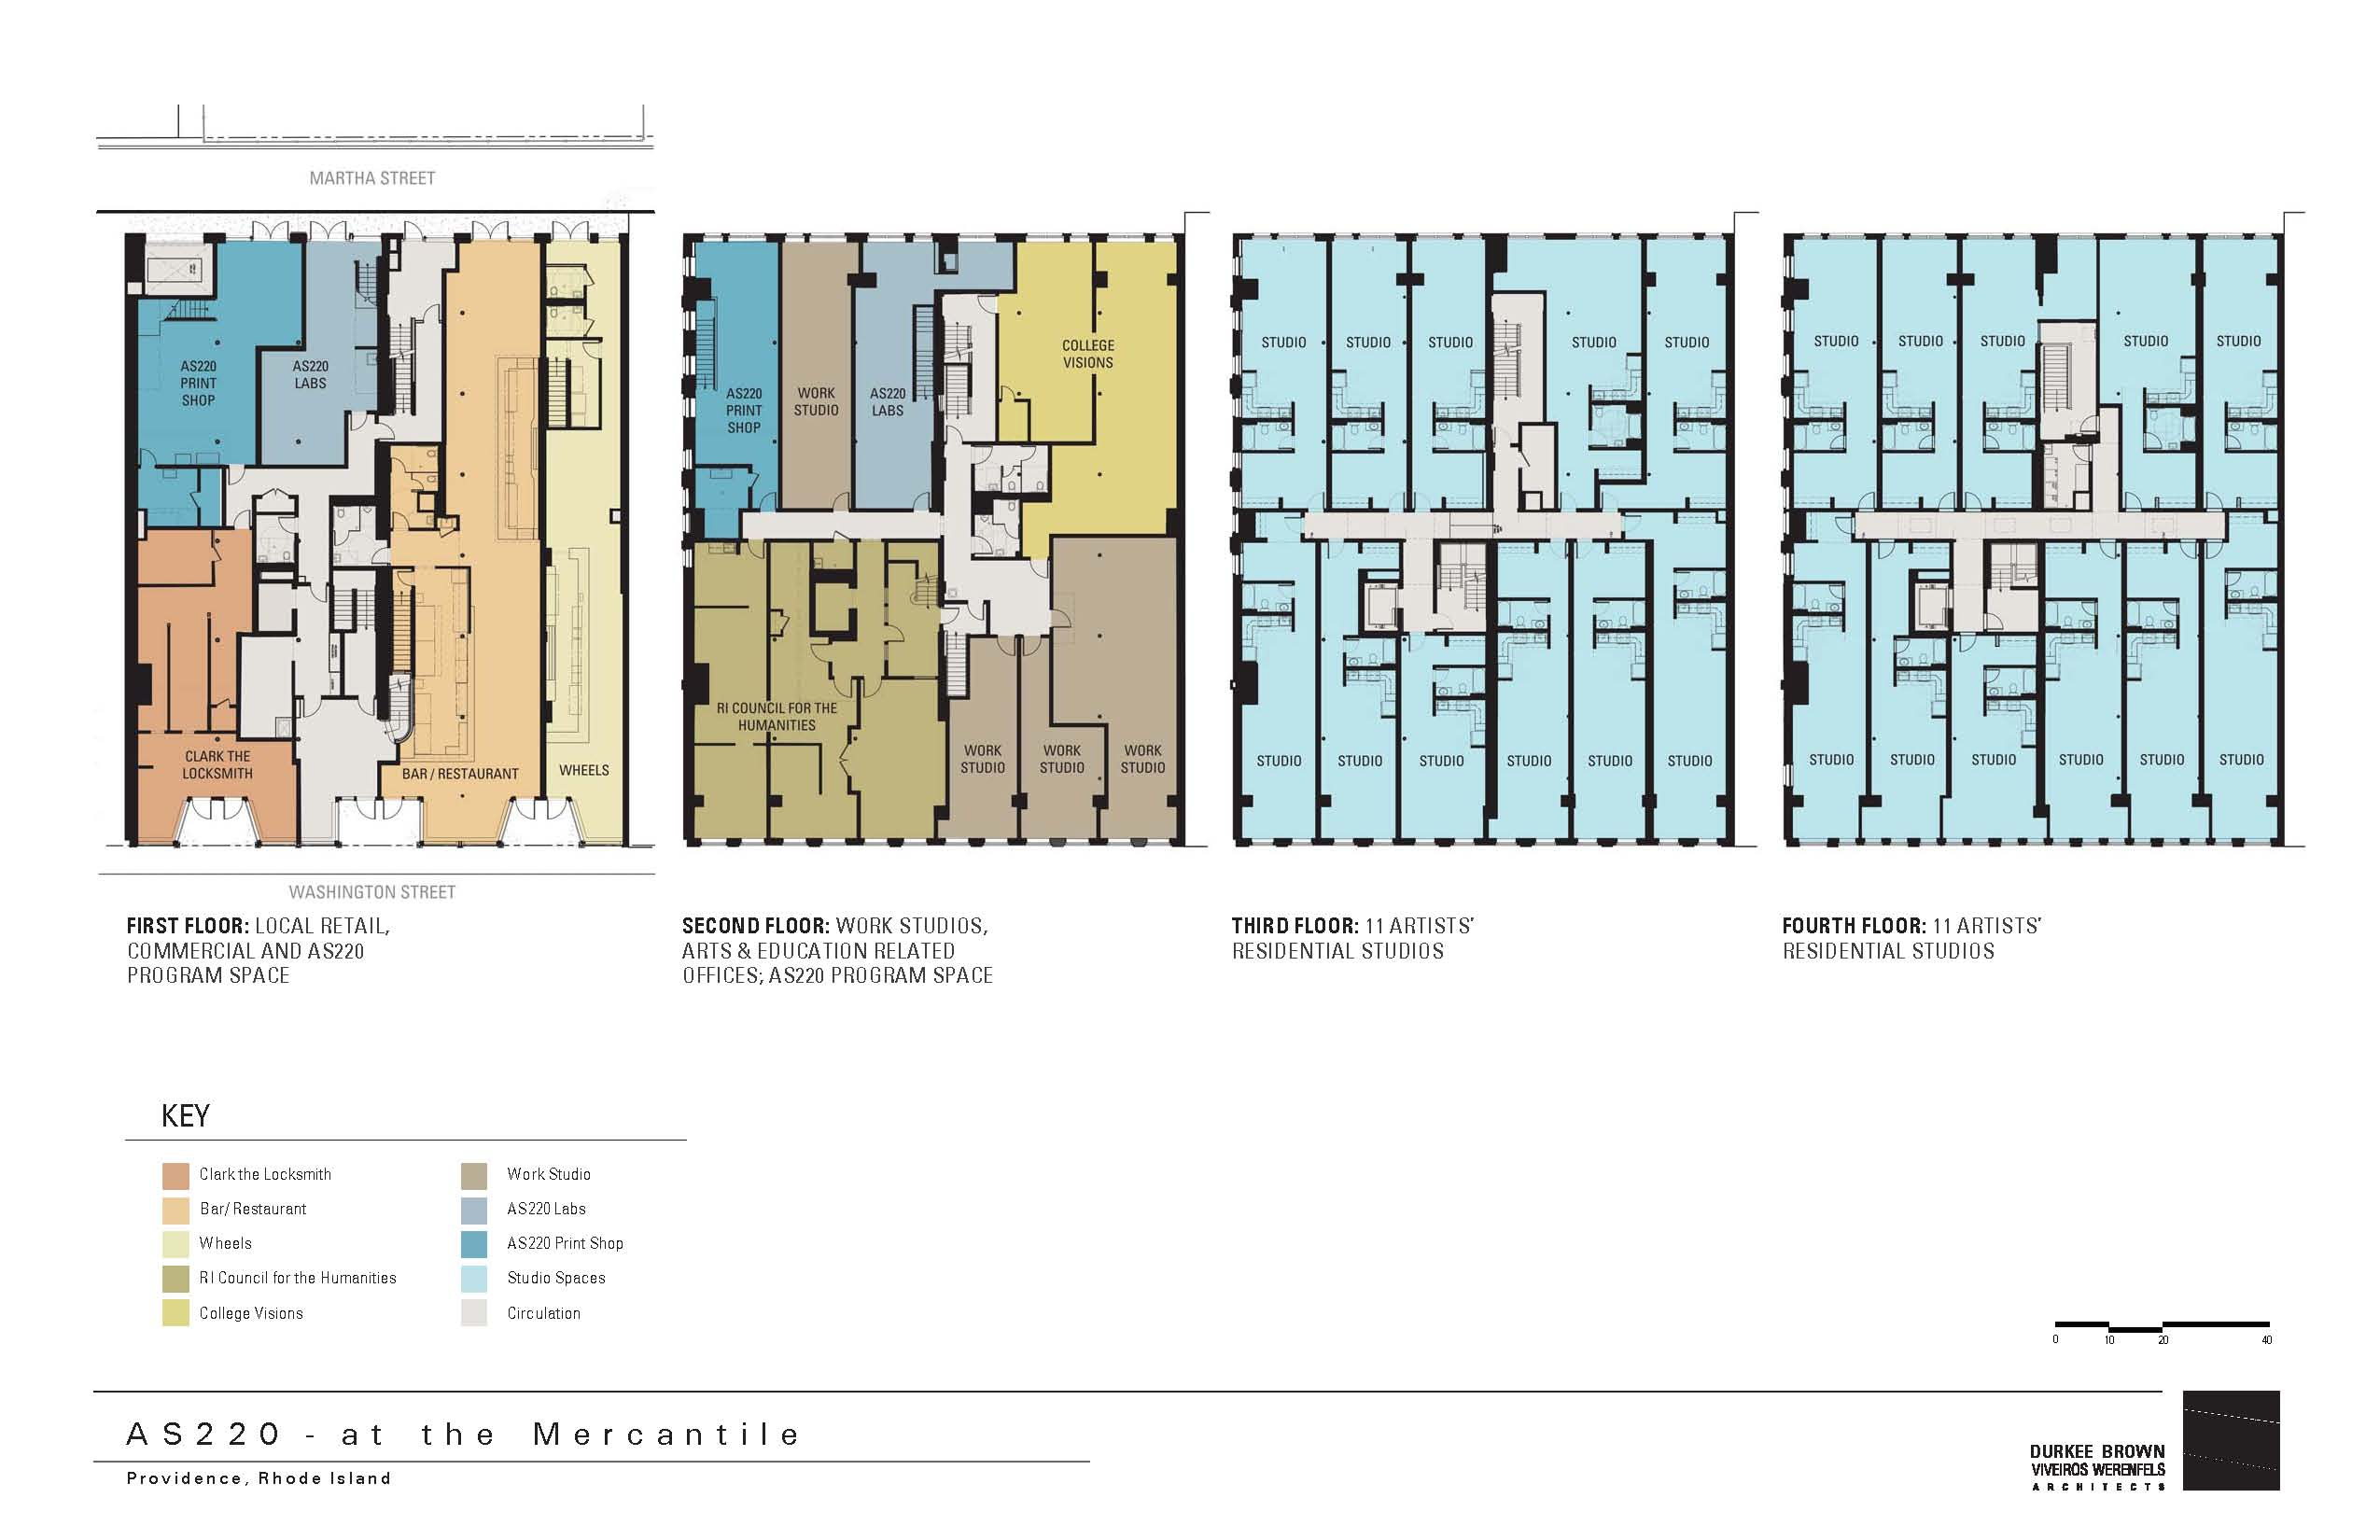 Mercantile Block on 600 Sq Ft Cottage Plans